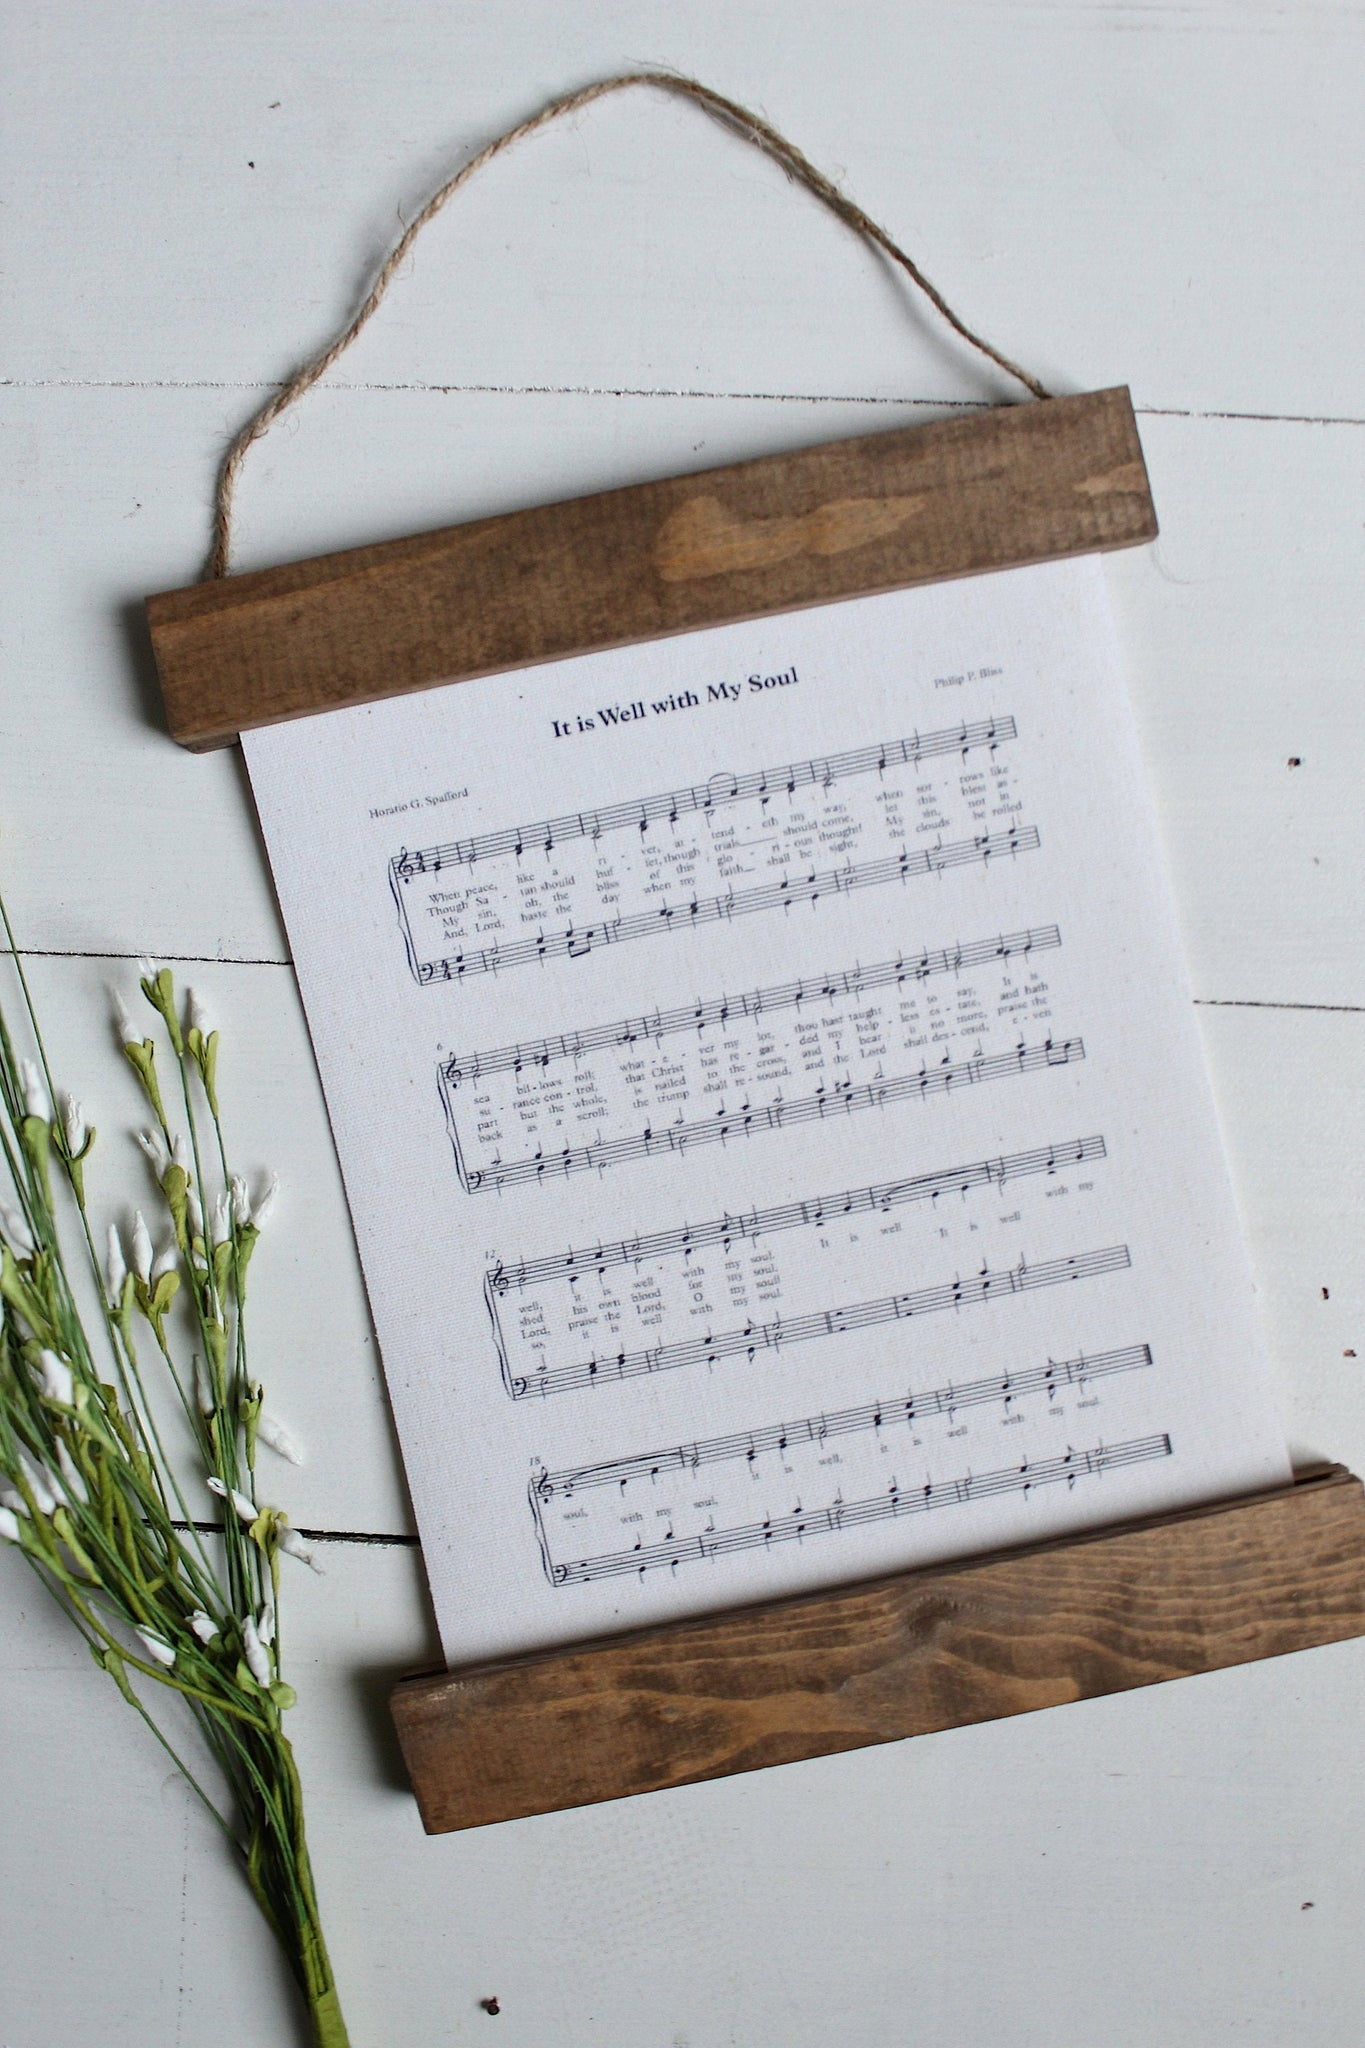 It is well with my soul sheet music/wall art/music notes/christian art/canvas print/framed art/picture frame/home decor/wall art